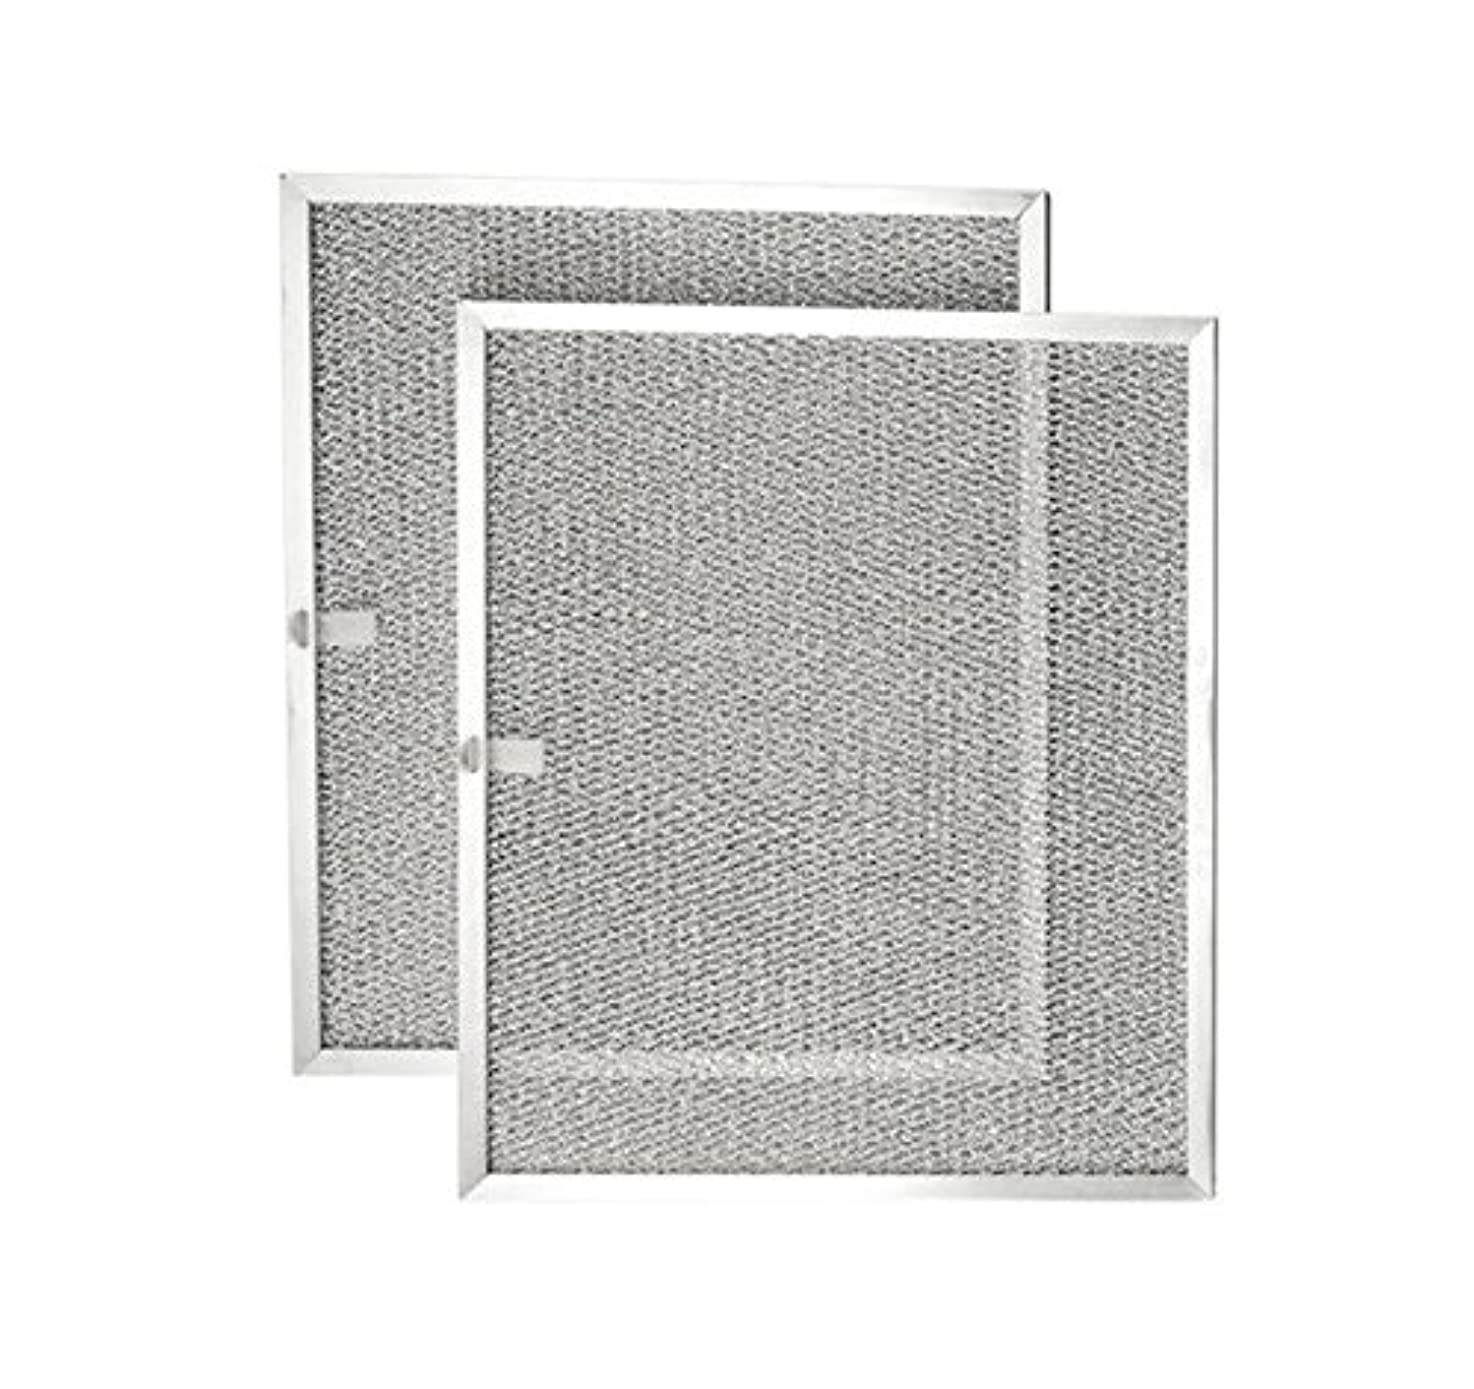 Happy-shoP (2-Pack) Filters for Broan Nutone Model 99010299 Aluminum Mesh Range Hood Filter